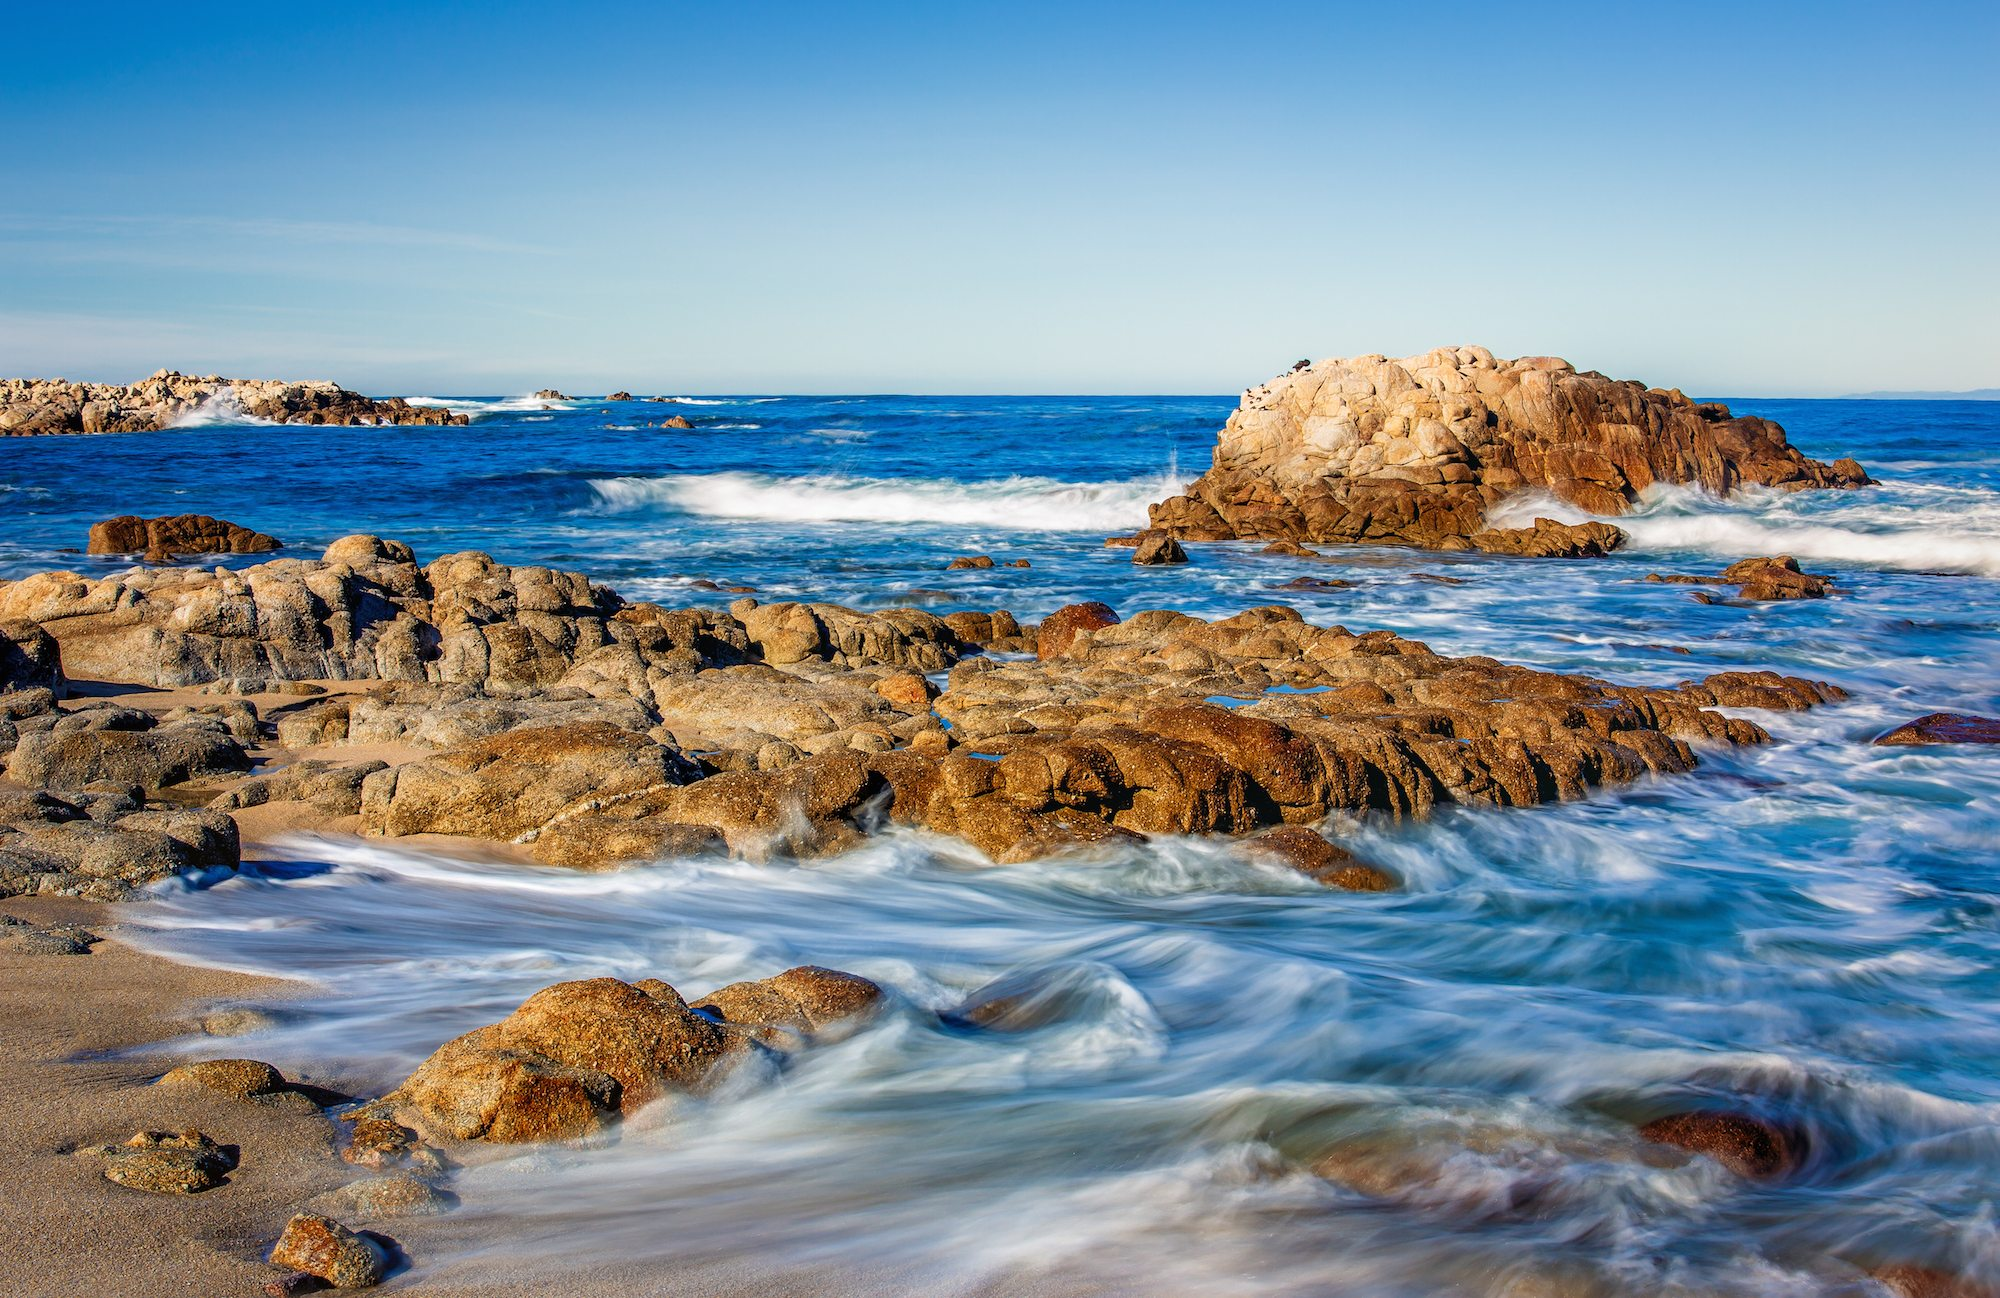 California's 17-Mile Drive